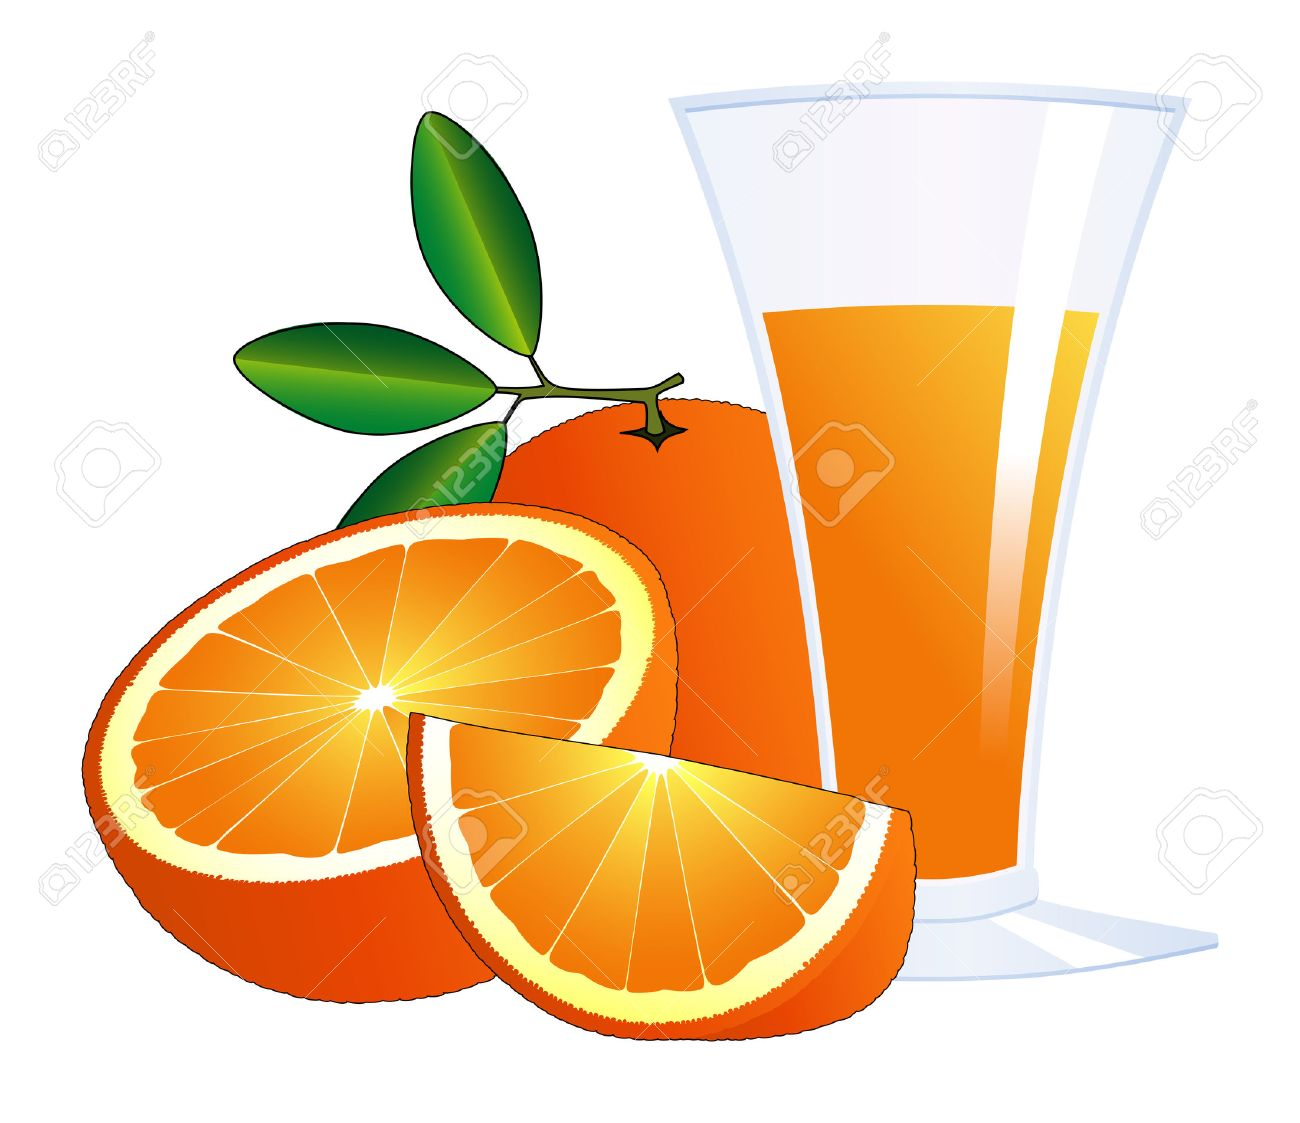 Orange Juice Glass Clipart Oranges And a Glass of Juice